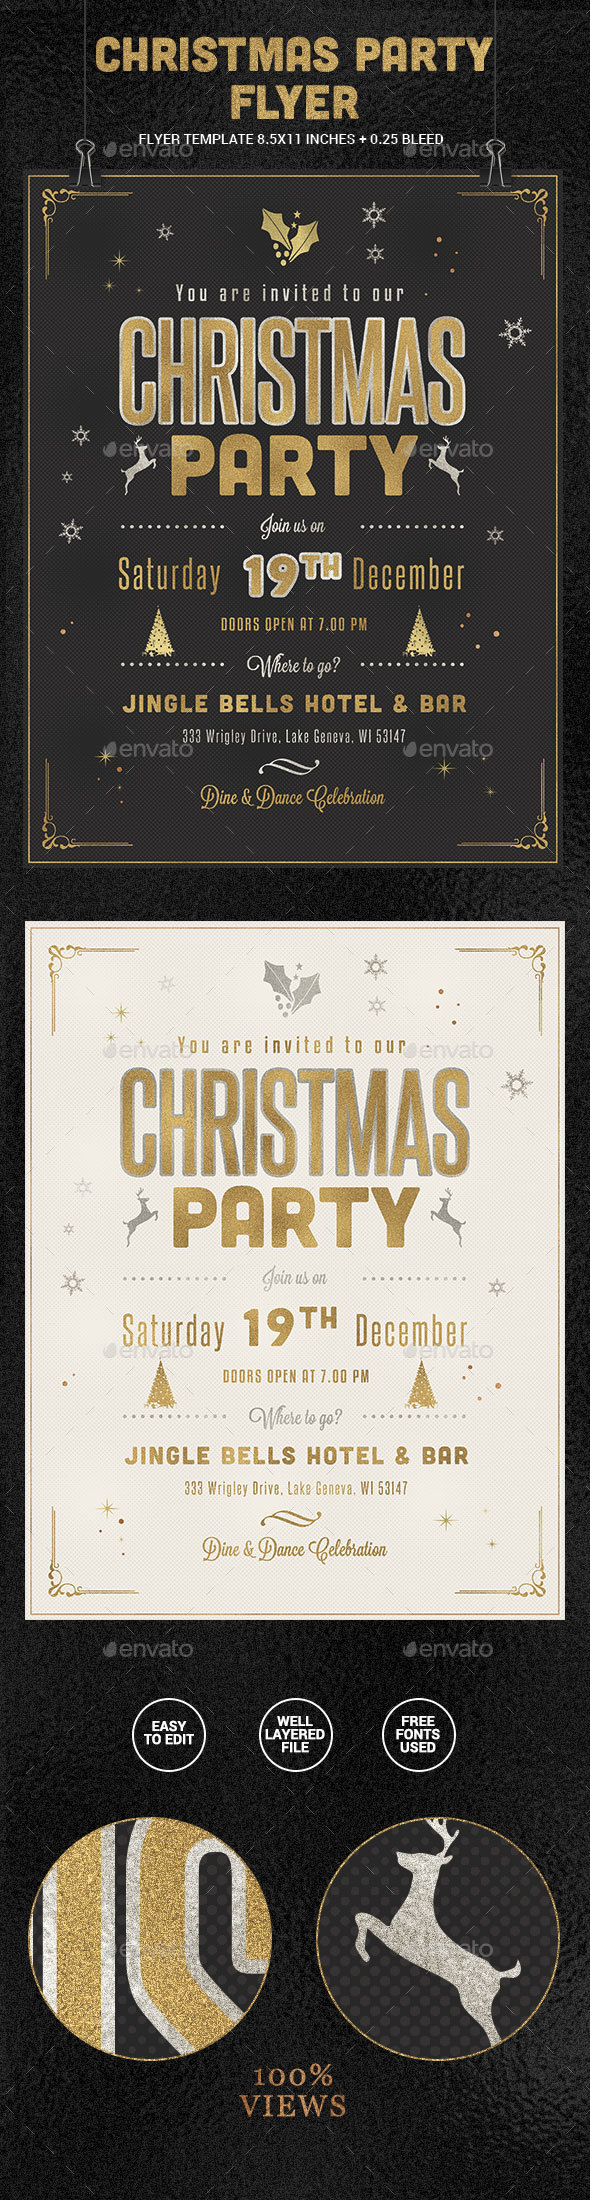 Golden Christmas Party Flyer